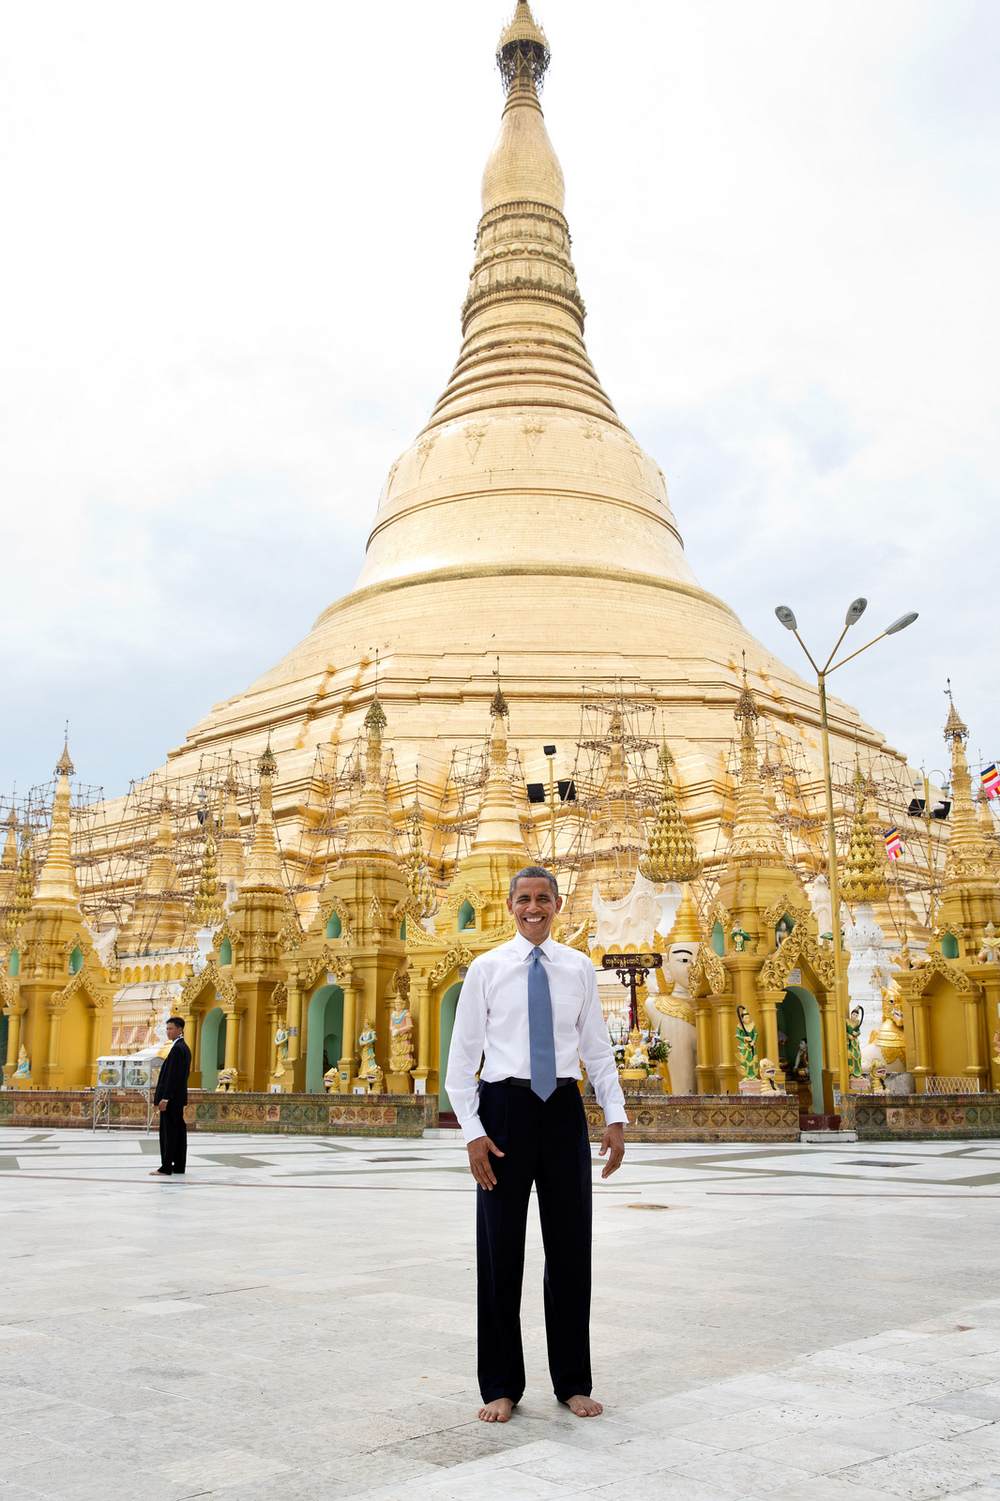 """Nov. 19, 2012  """"To some, this is just a snapshot and doesn't belong in this gallery of candid photographs from the year. But to me, it evokes what the trip to Burma was all about. Here is the President, shoes and socks off in respect, posing like an American tourist in front of the oldest pagoda in the world in a country that no U.S. President had ever been able to visit.""""President Barack Obama stands barefoot in front of the 368-foot tall Shwedagon pagoda in Rangoon, Burma, Nov. 19, 2012. (Official White House Photo by Pete Souza)"""